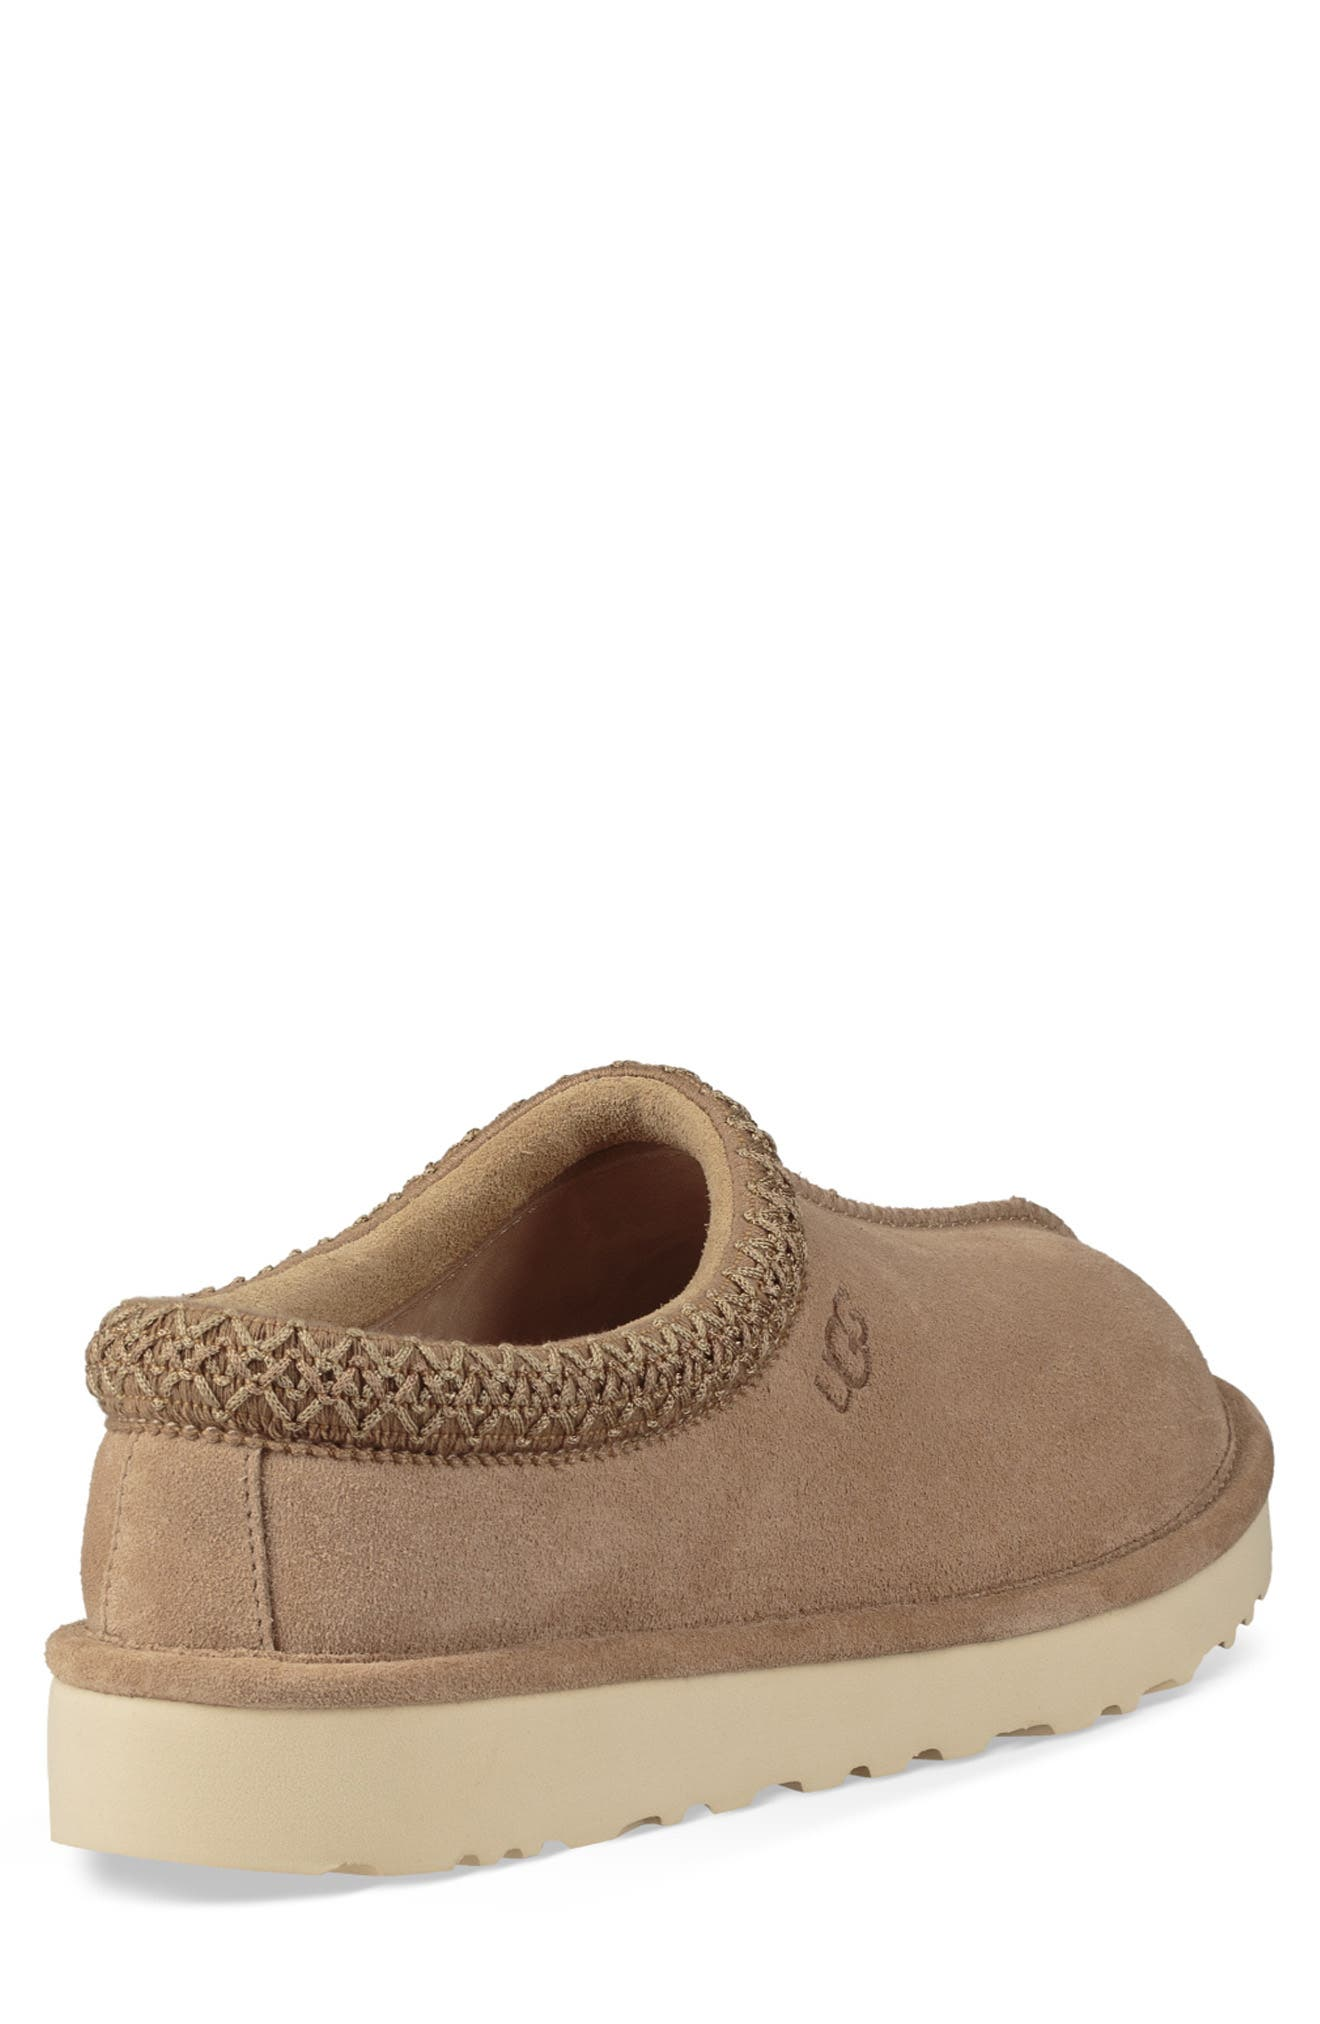 Tasman Pinnacle Indoor/Outdoor Horween Slipper,                             Alternate thumbnail 2, color,                             BEIGE